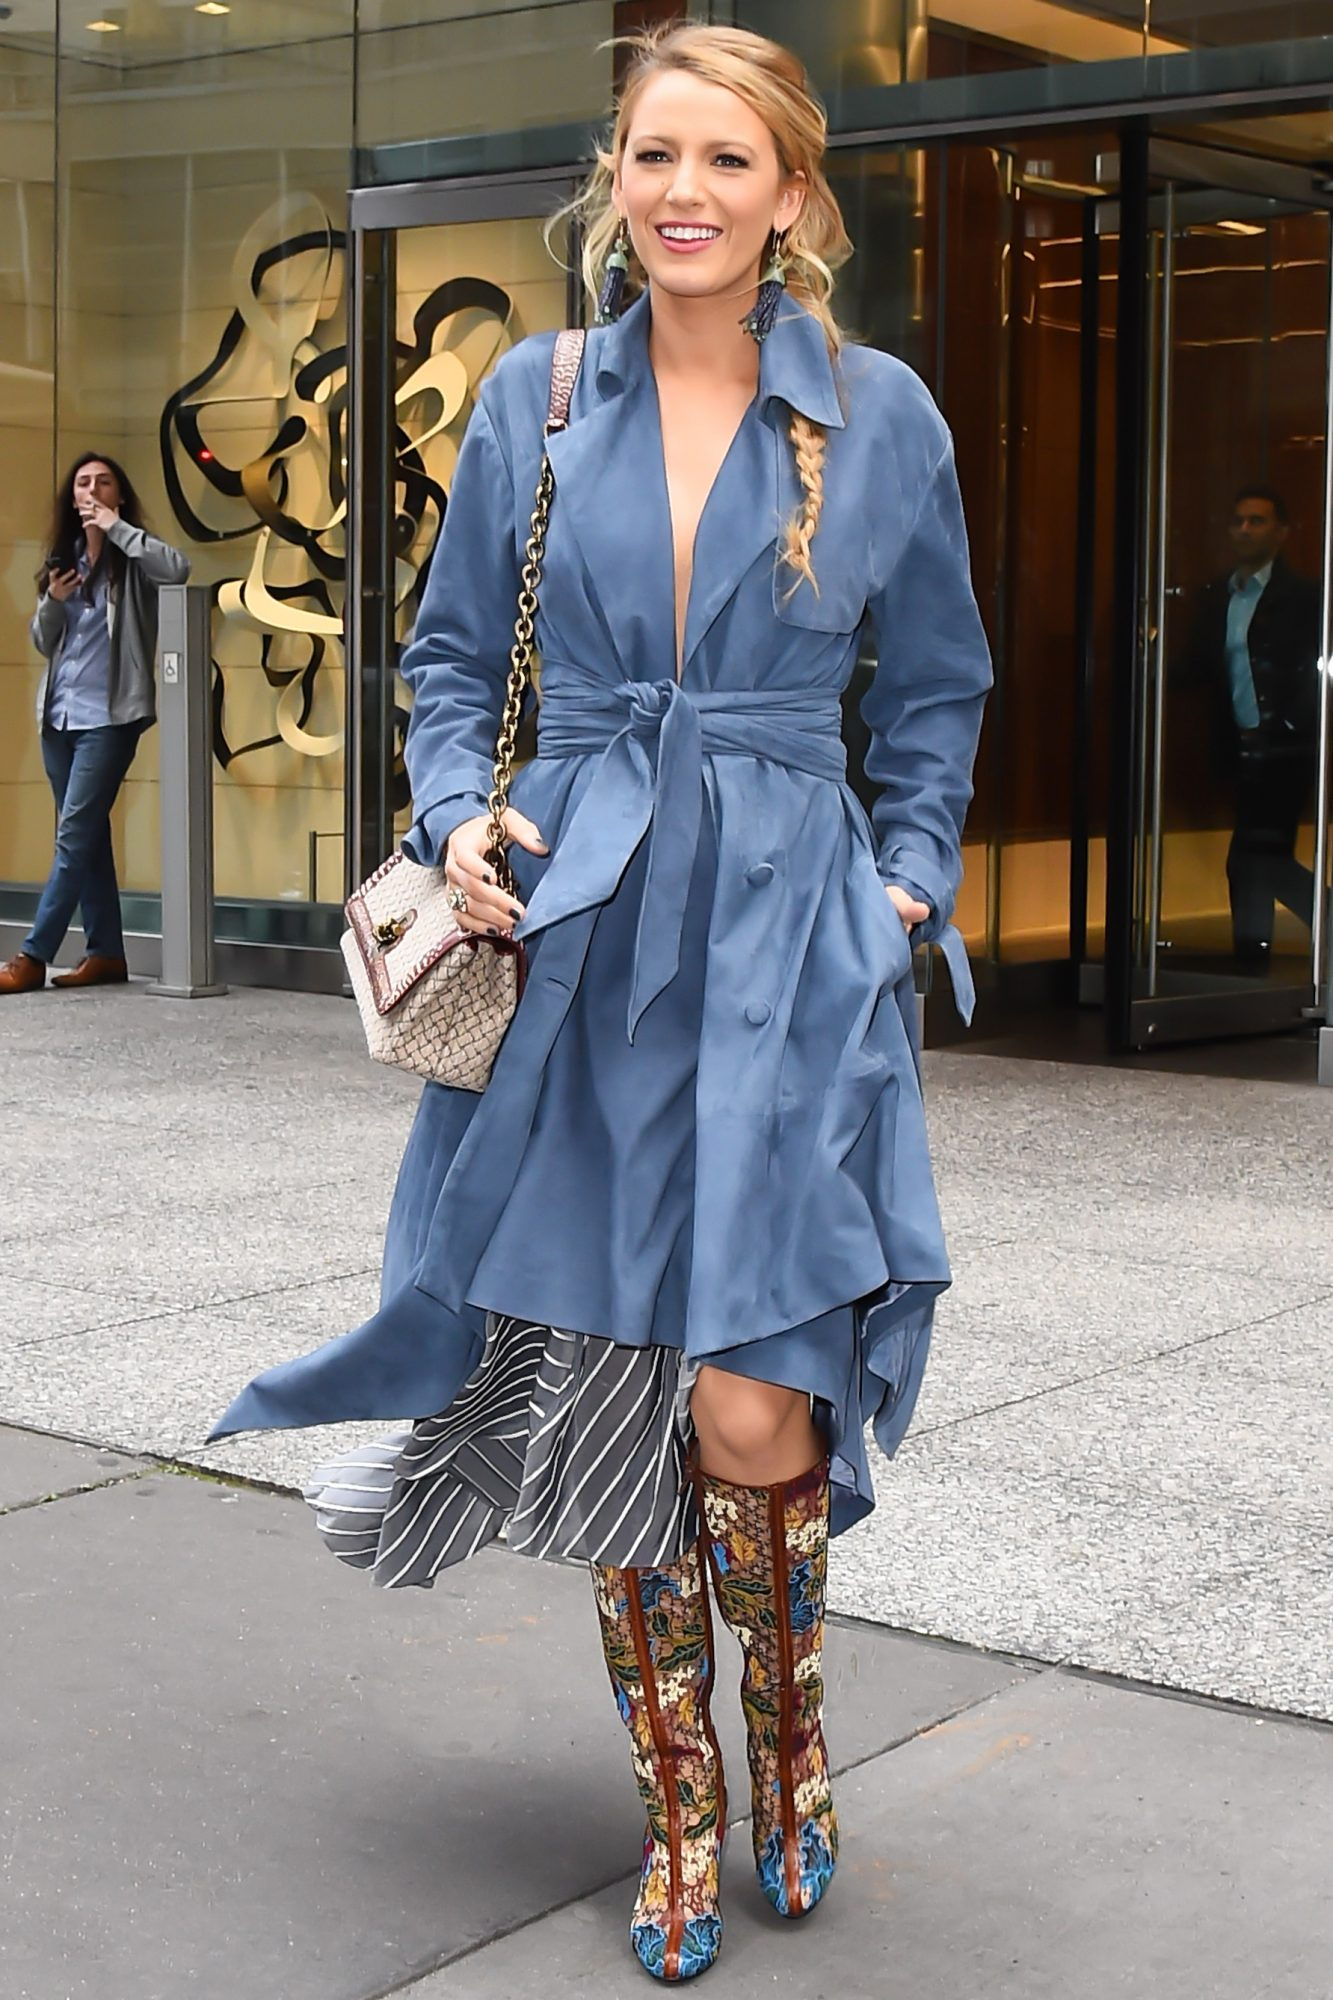 Blake Lively S Best Street Style Looks Instyle Com